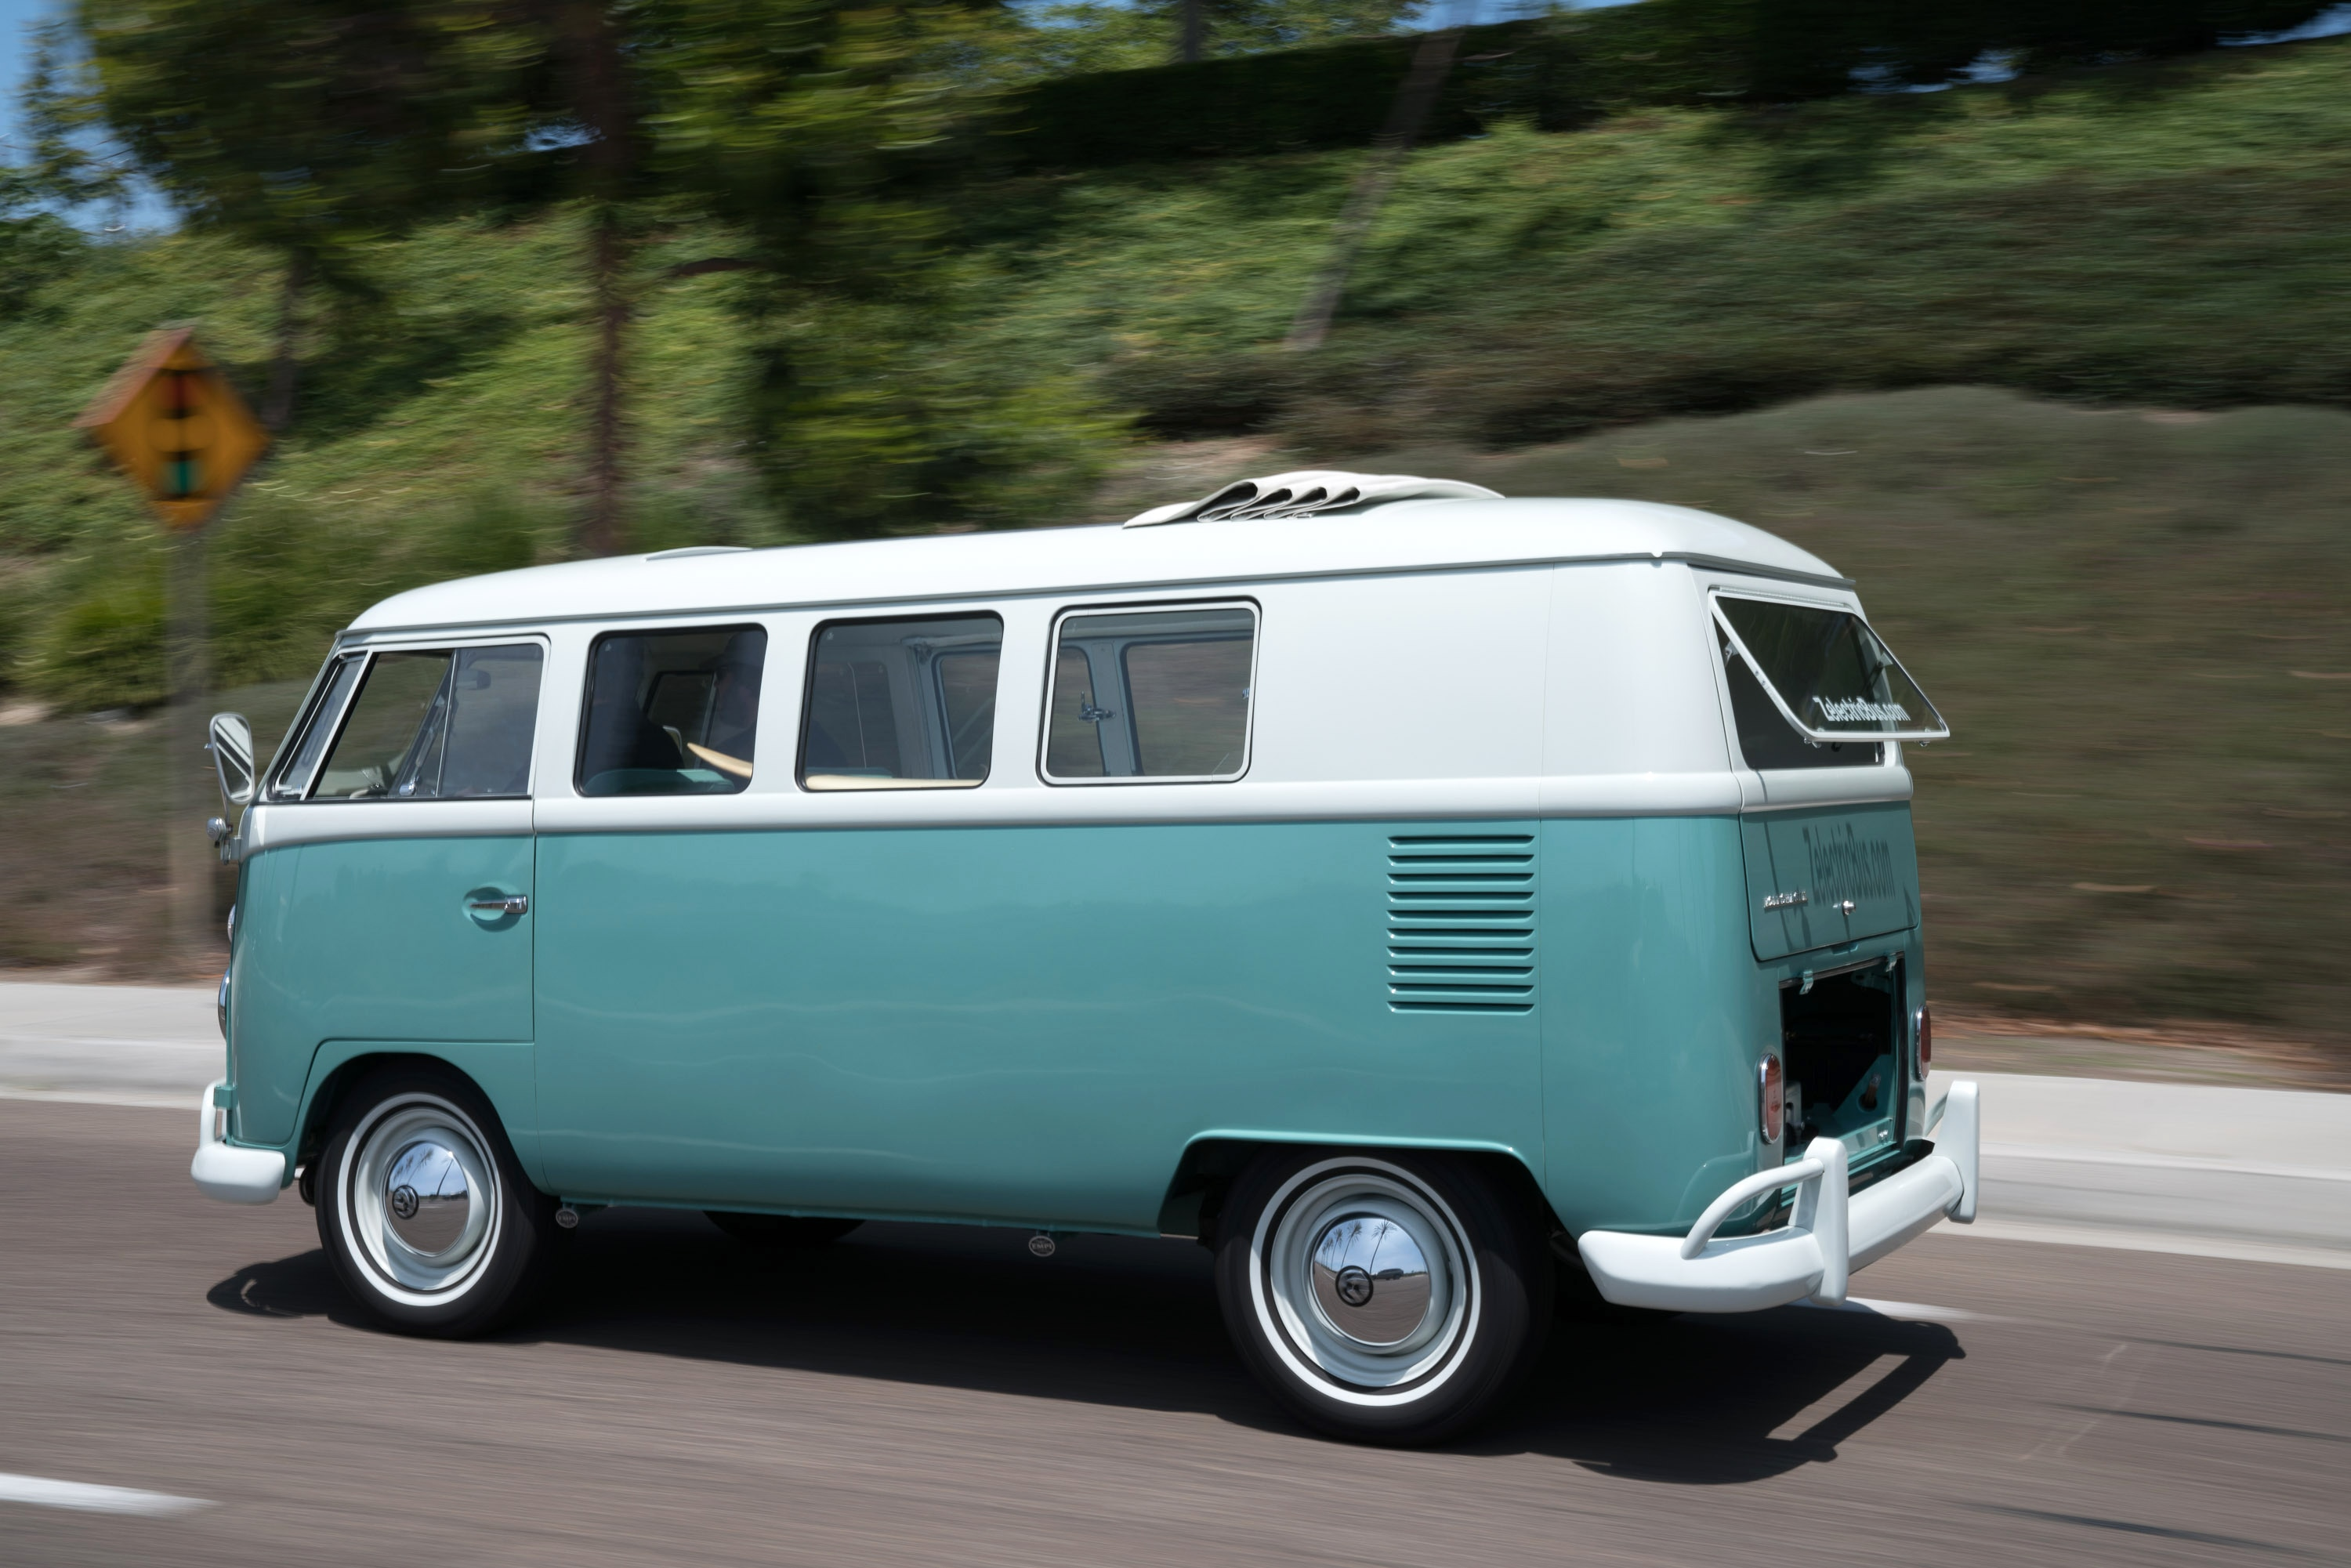 Zelectrified Meet The All Electric 1964 Volkswagen Microbus